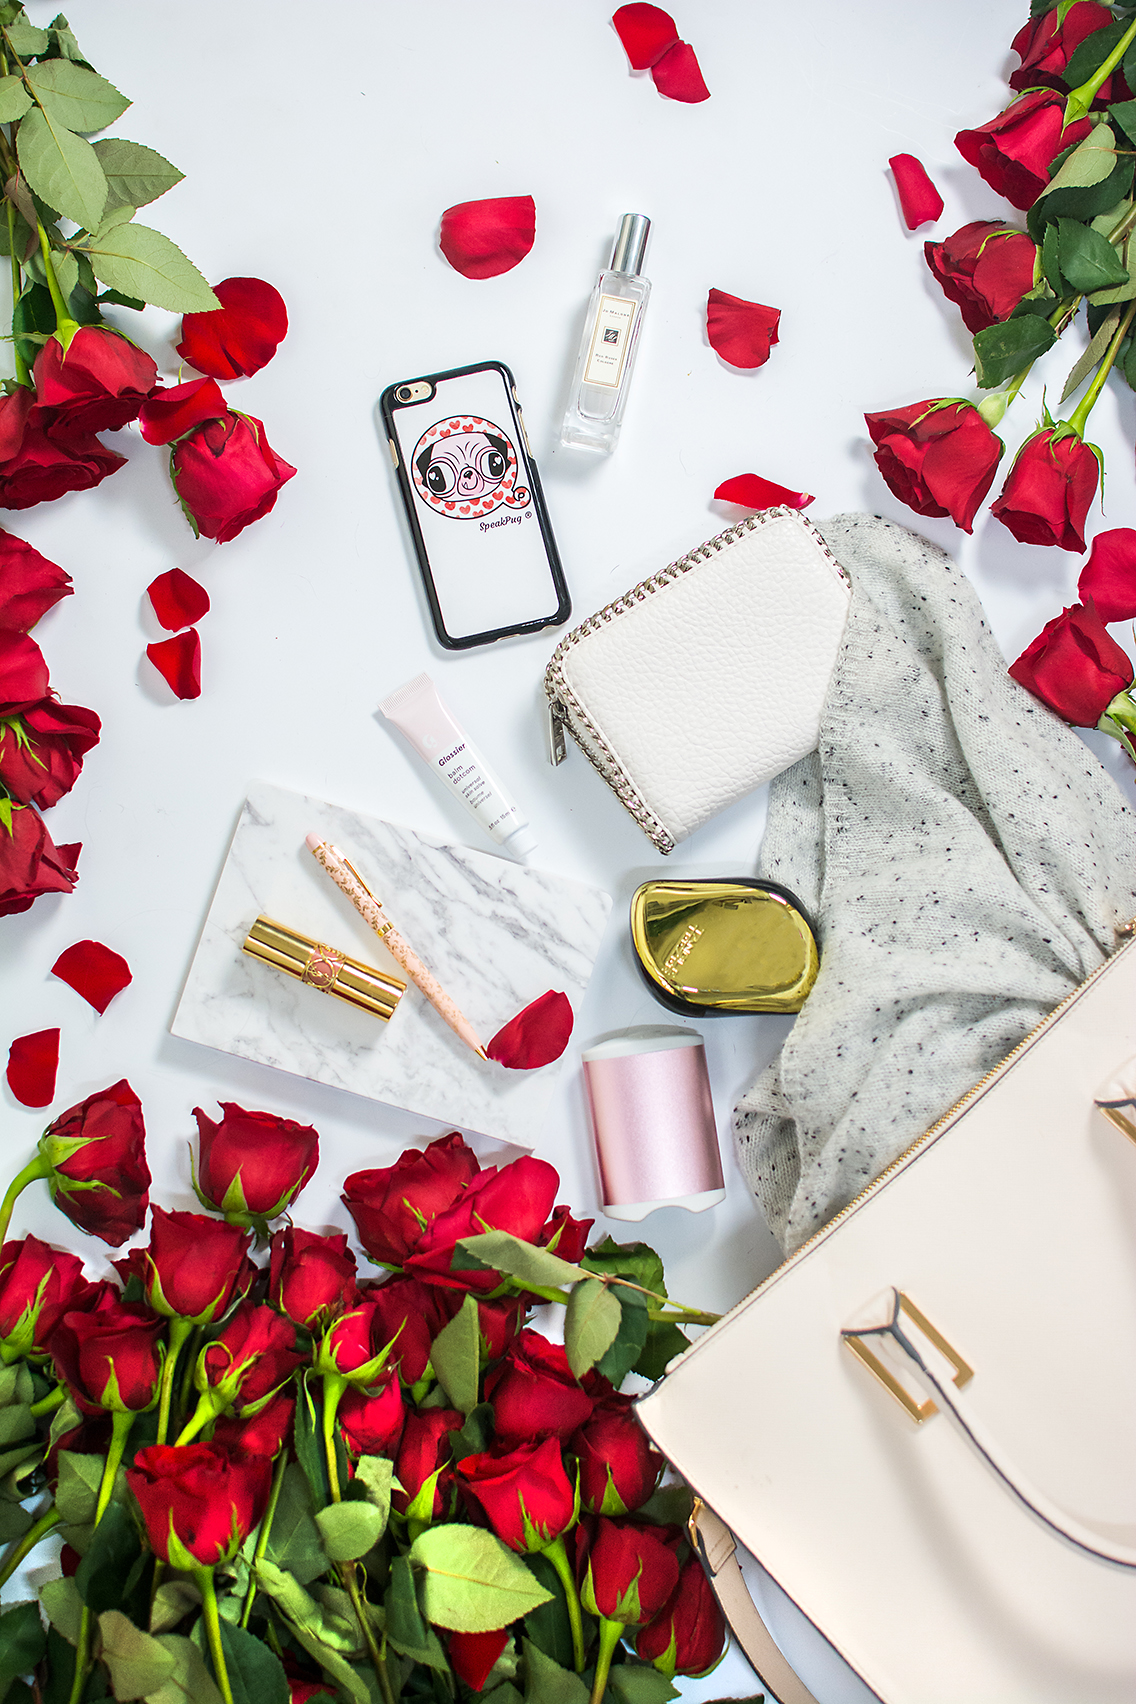 H&M Tote Jo Malone Red Roses Glossier Balm YSL Lips 20